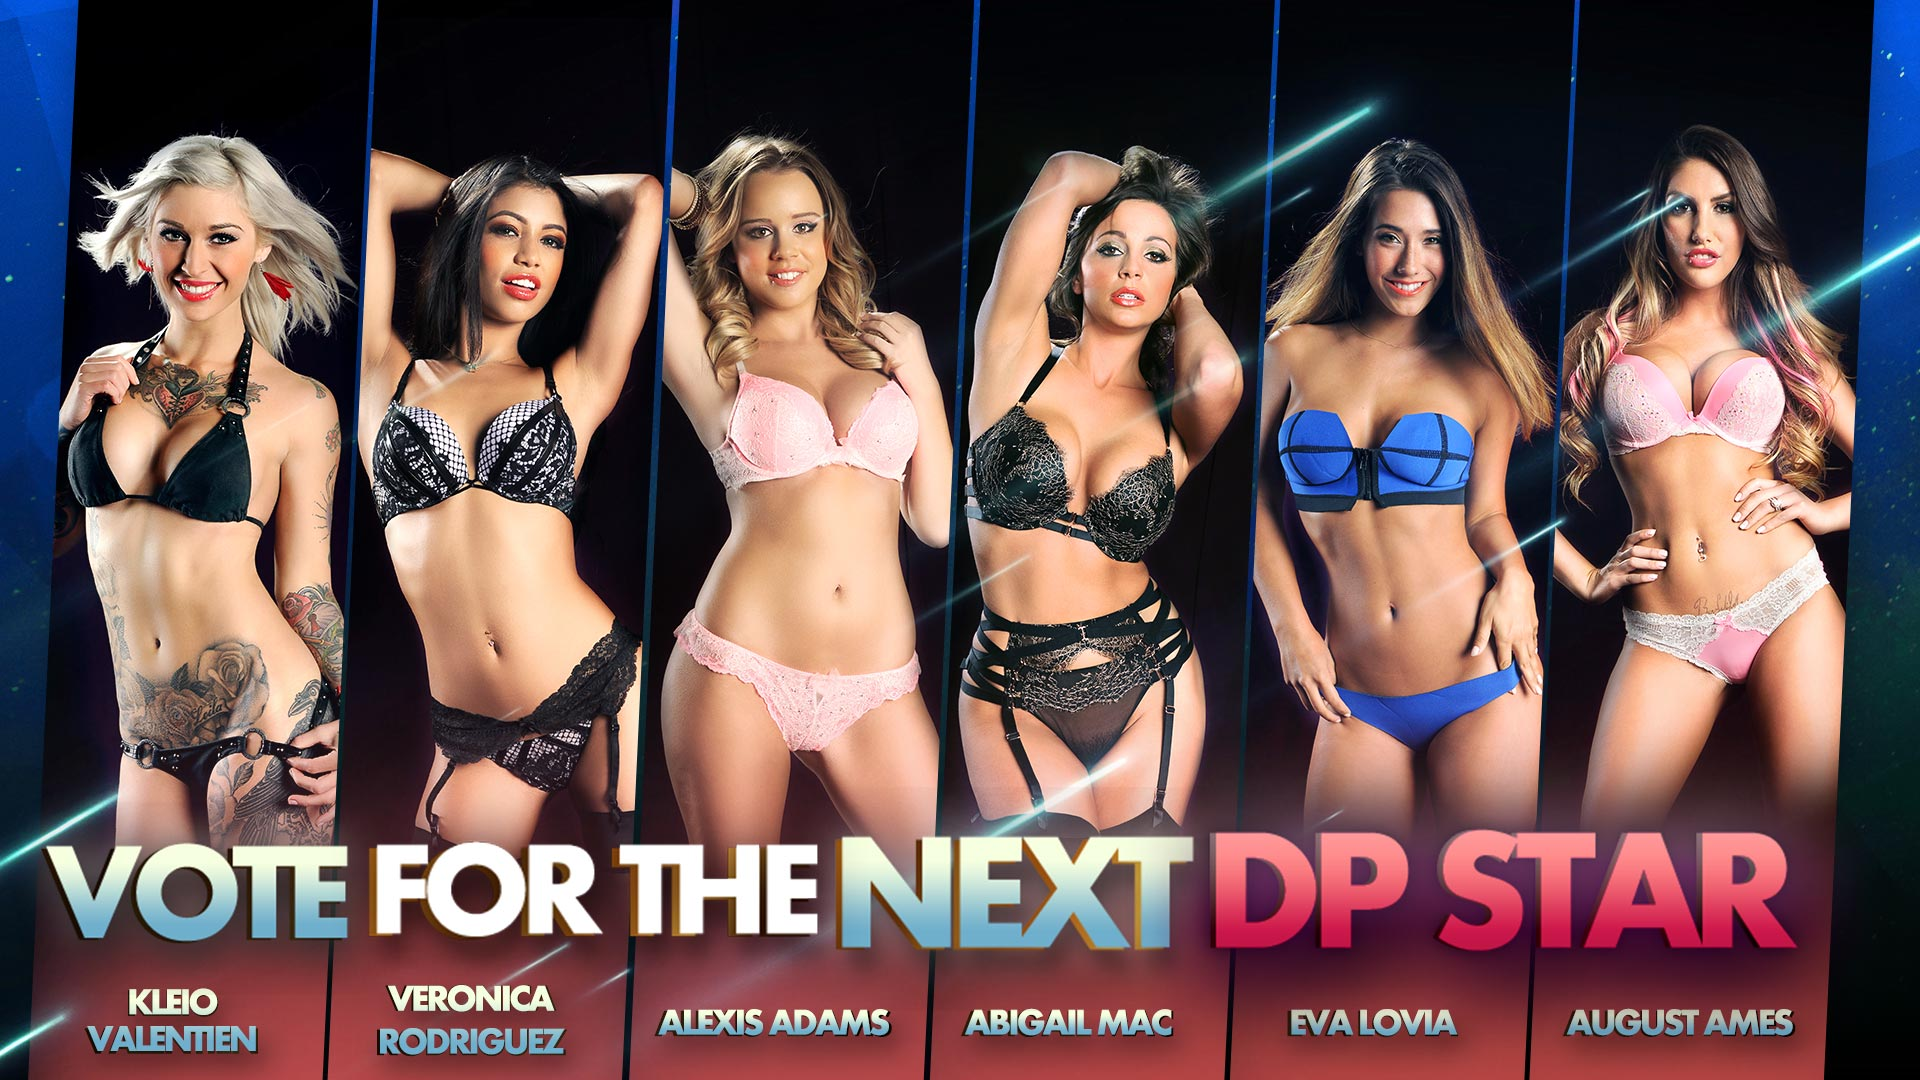 Digital playground dp star